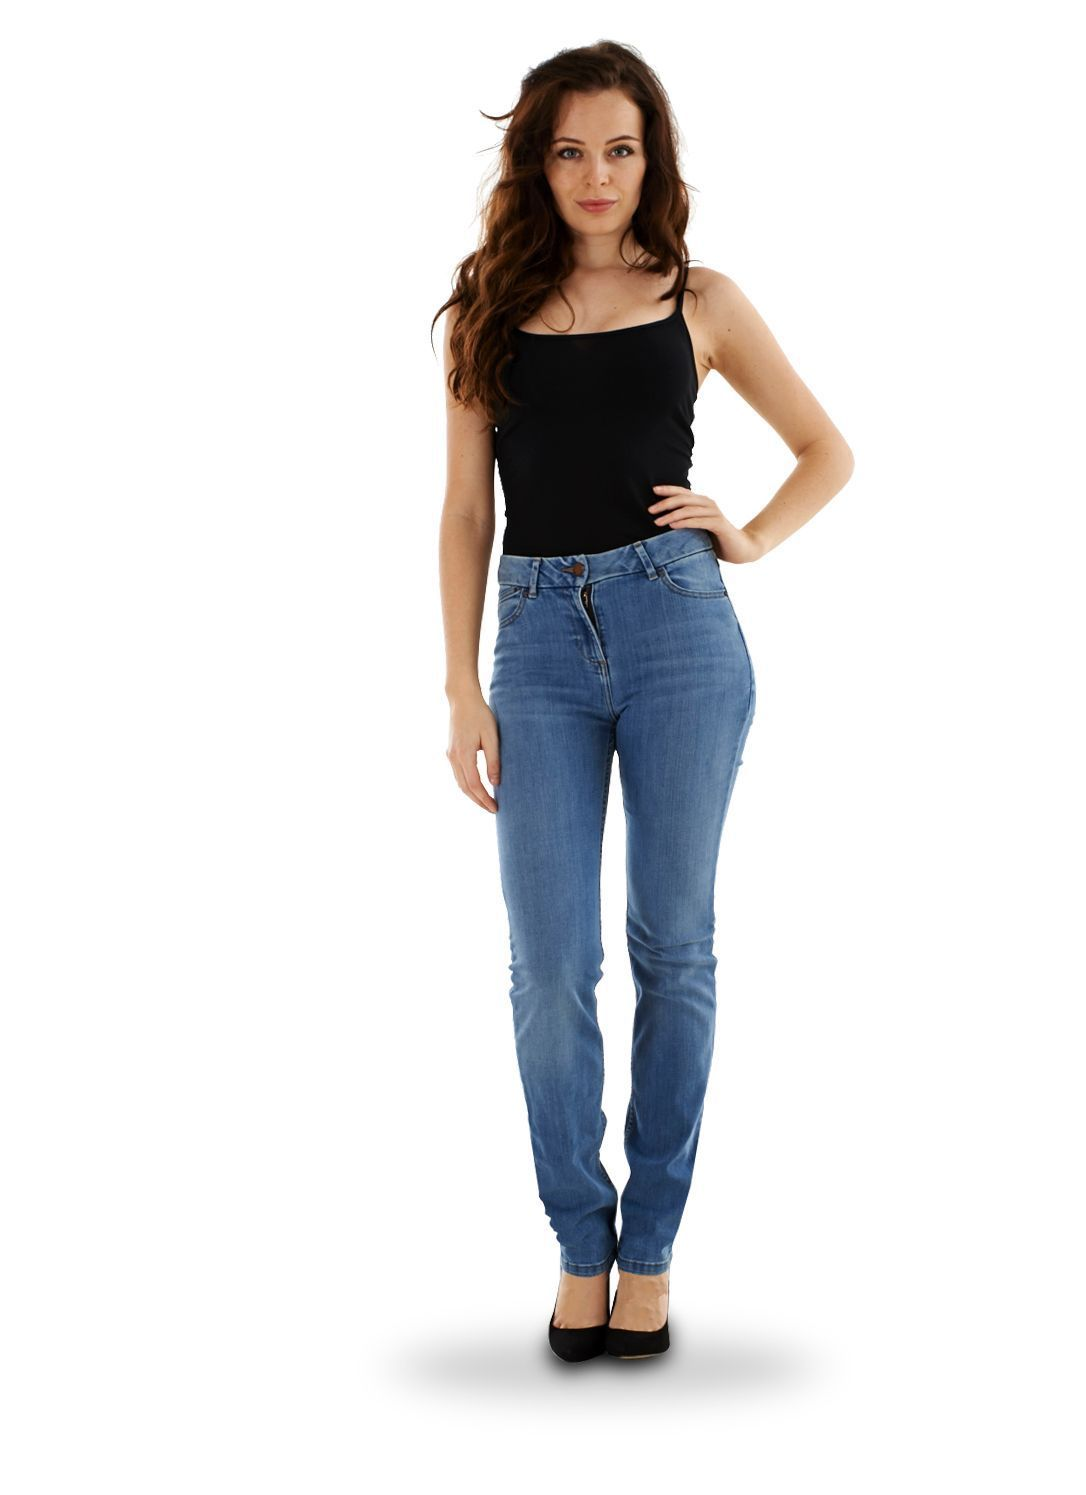 Hollister women's jeans fit amazing, come in a variety of sizes, the trendiest new styles from flare to cropped flare or super skinnies and jean leggings, and the coolest washes. But above all, every pair of Hollister denim is incredibly soft and comfortable.